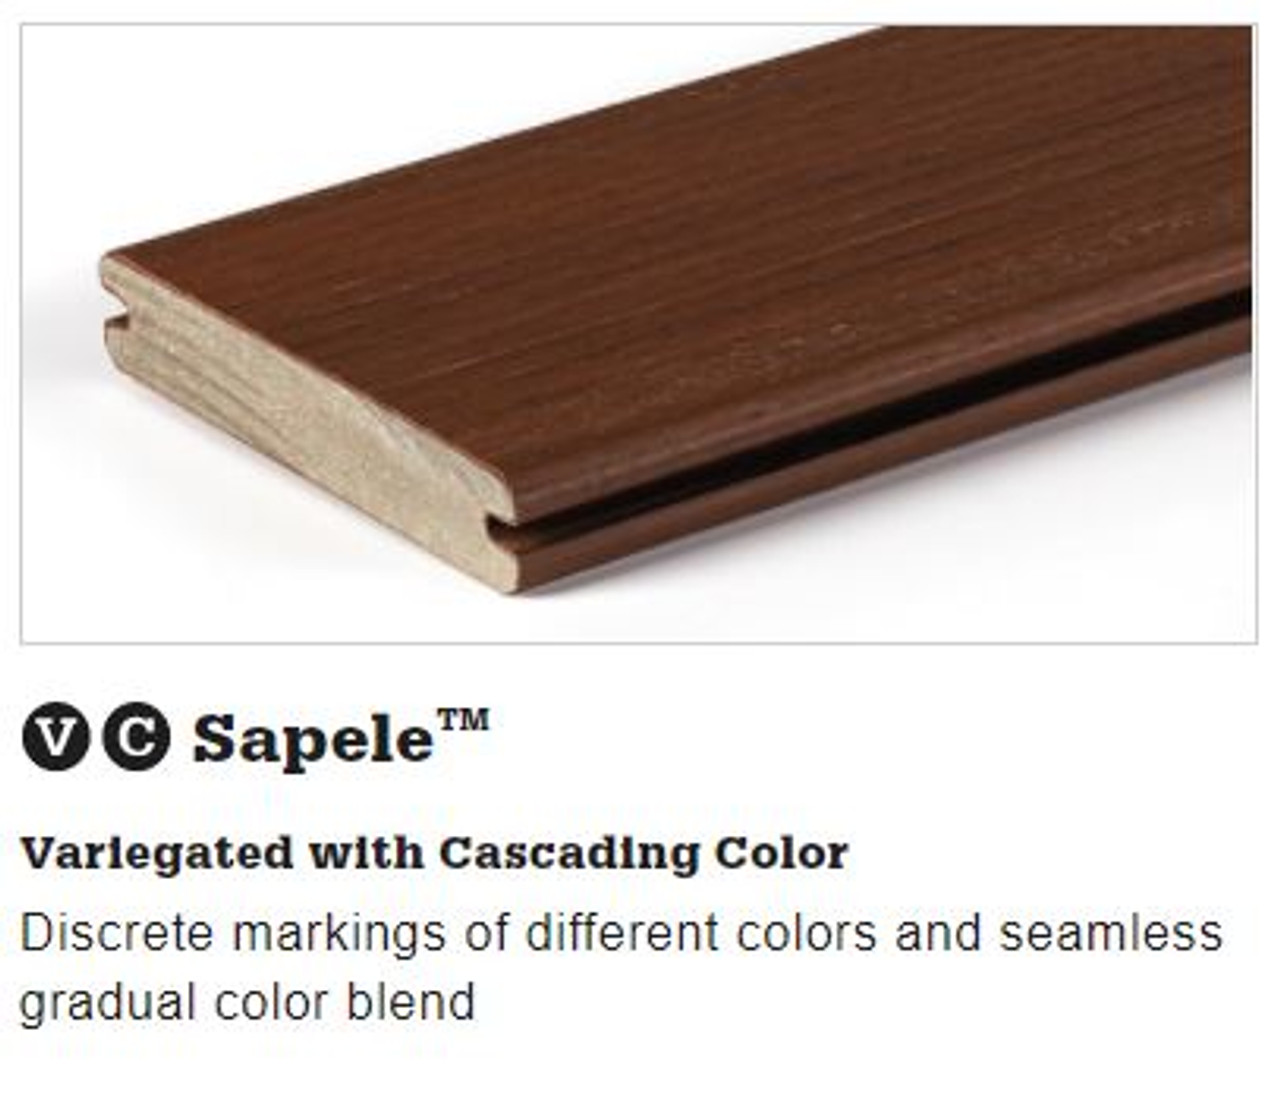 TimberTech Legacy Grooved Decking in Sapele